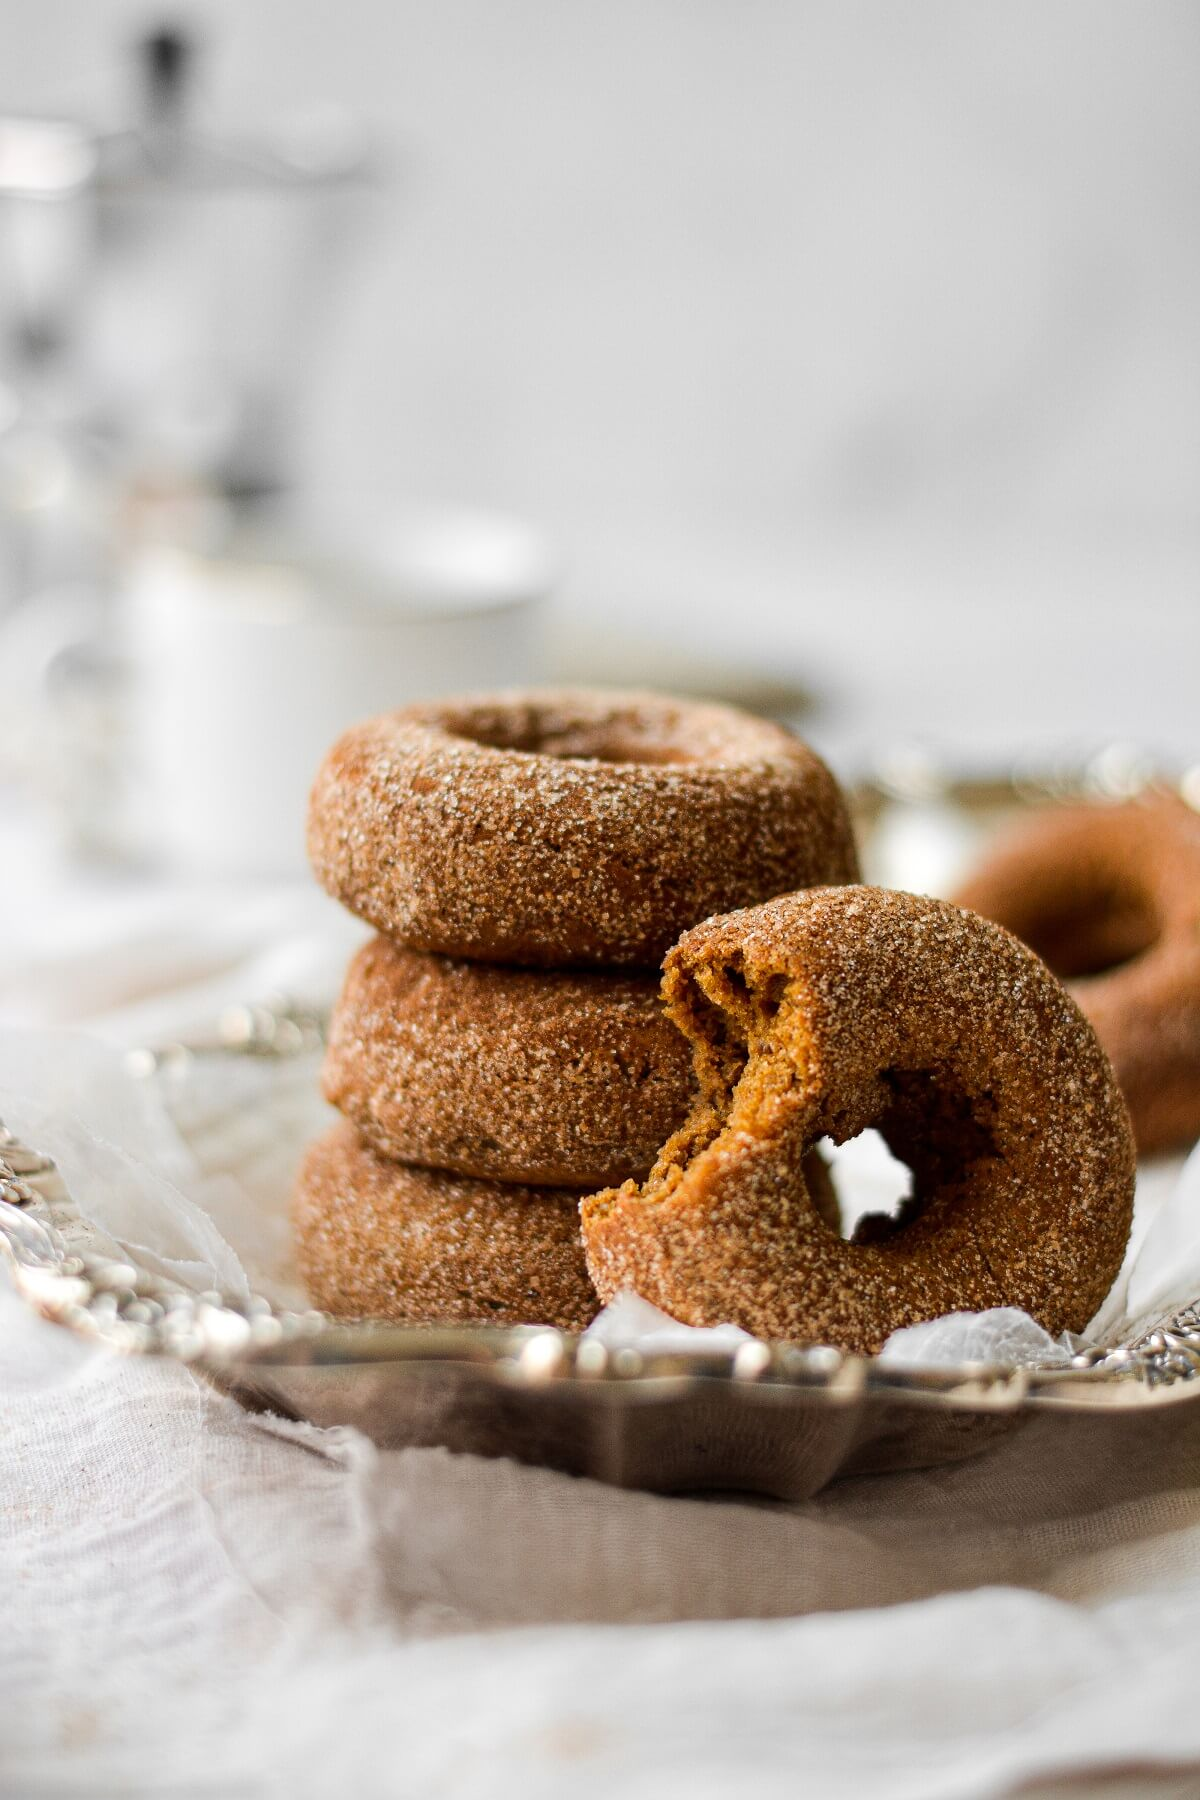 Pumpkin donuts, coated in cinnamon sugar, one with a bite taken out of it, stacked on a silver plate.